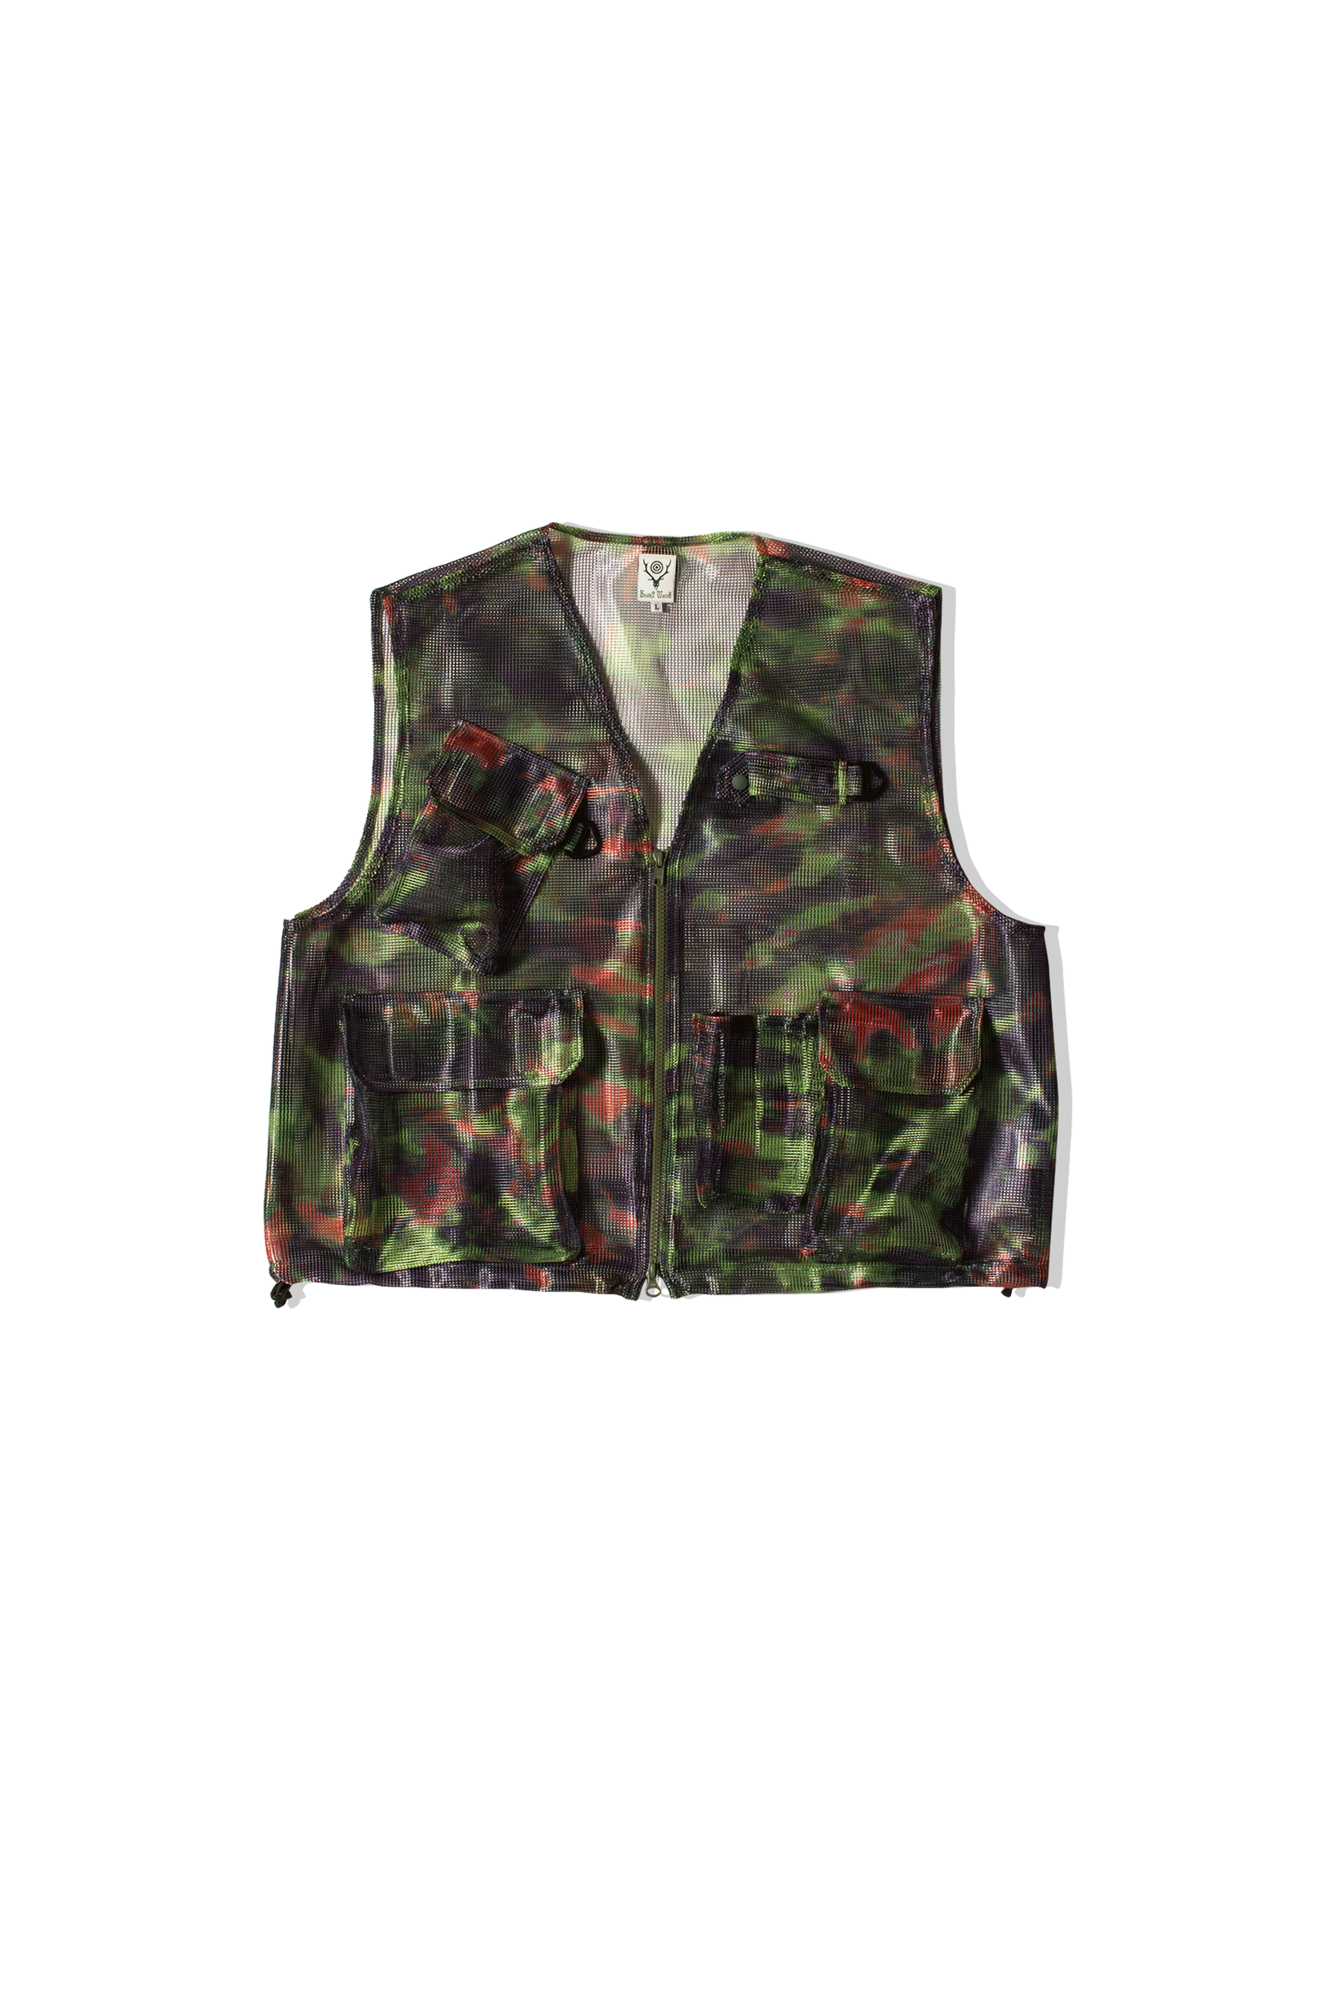 South2 West8 Vest Bush Trek Heavyweight Mesh Vest Multicolor IN796#000#TIEDYE#M - One Block Down